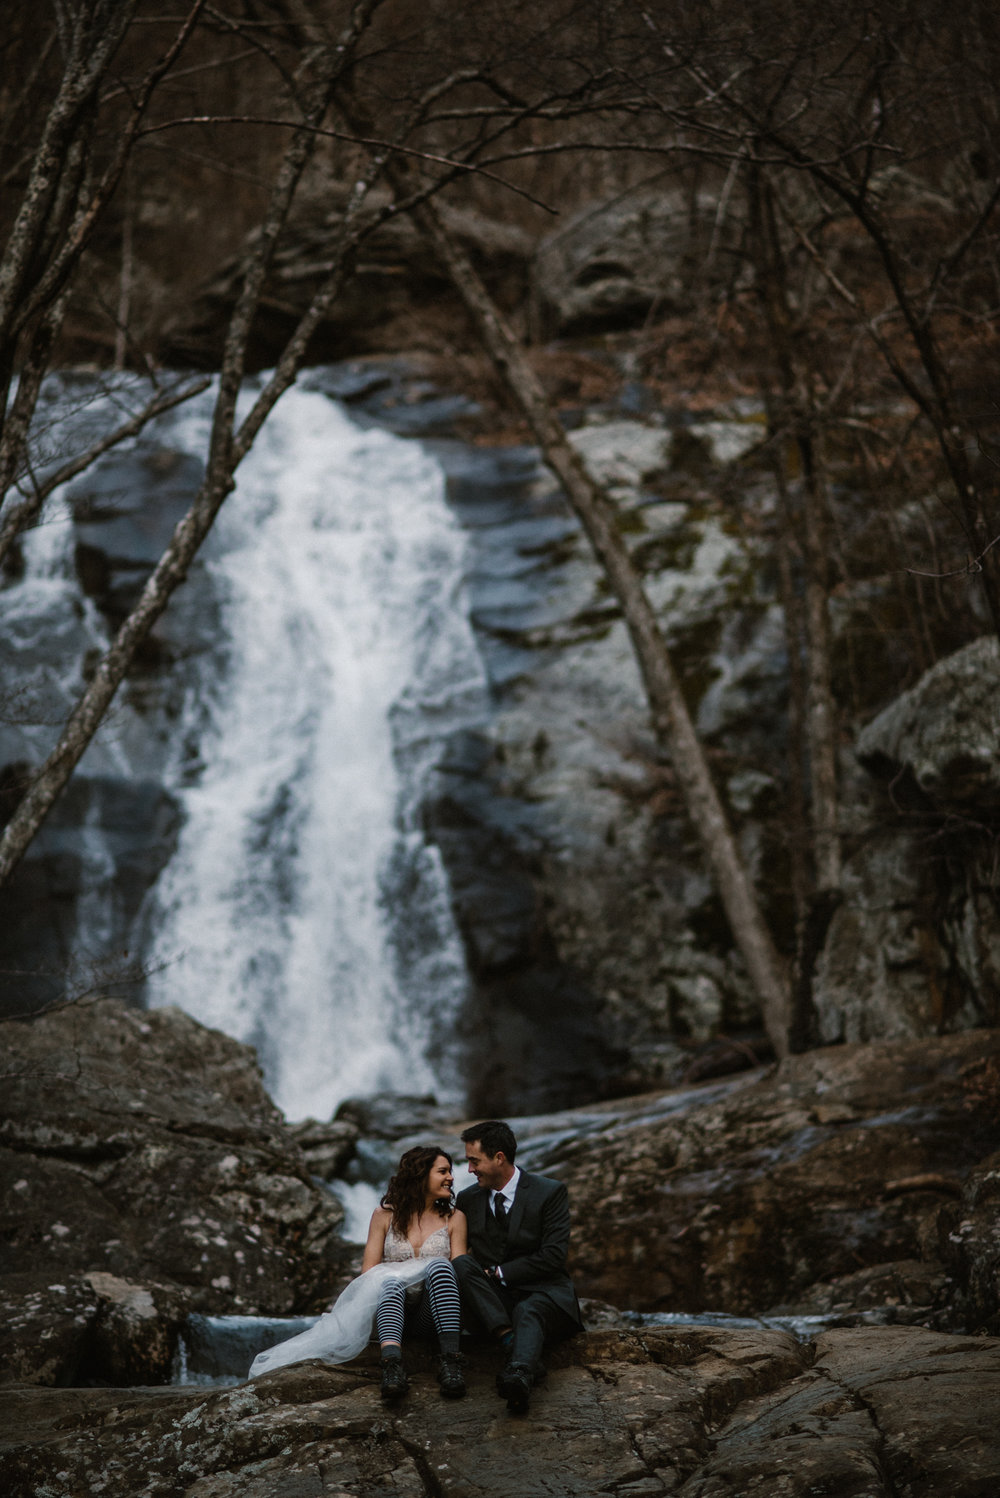 Stephanie and Steve - Shenandoah National Park Elopement - Sunrise Hiking Elopement - Adventurous Elopement - Virginia Elopement Photographer - Shenandoah national Park Wedding Photographer - White Sails Creative_14.jpg